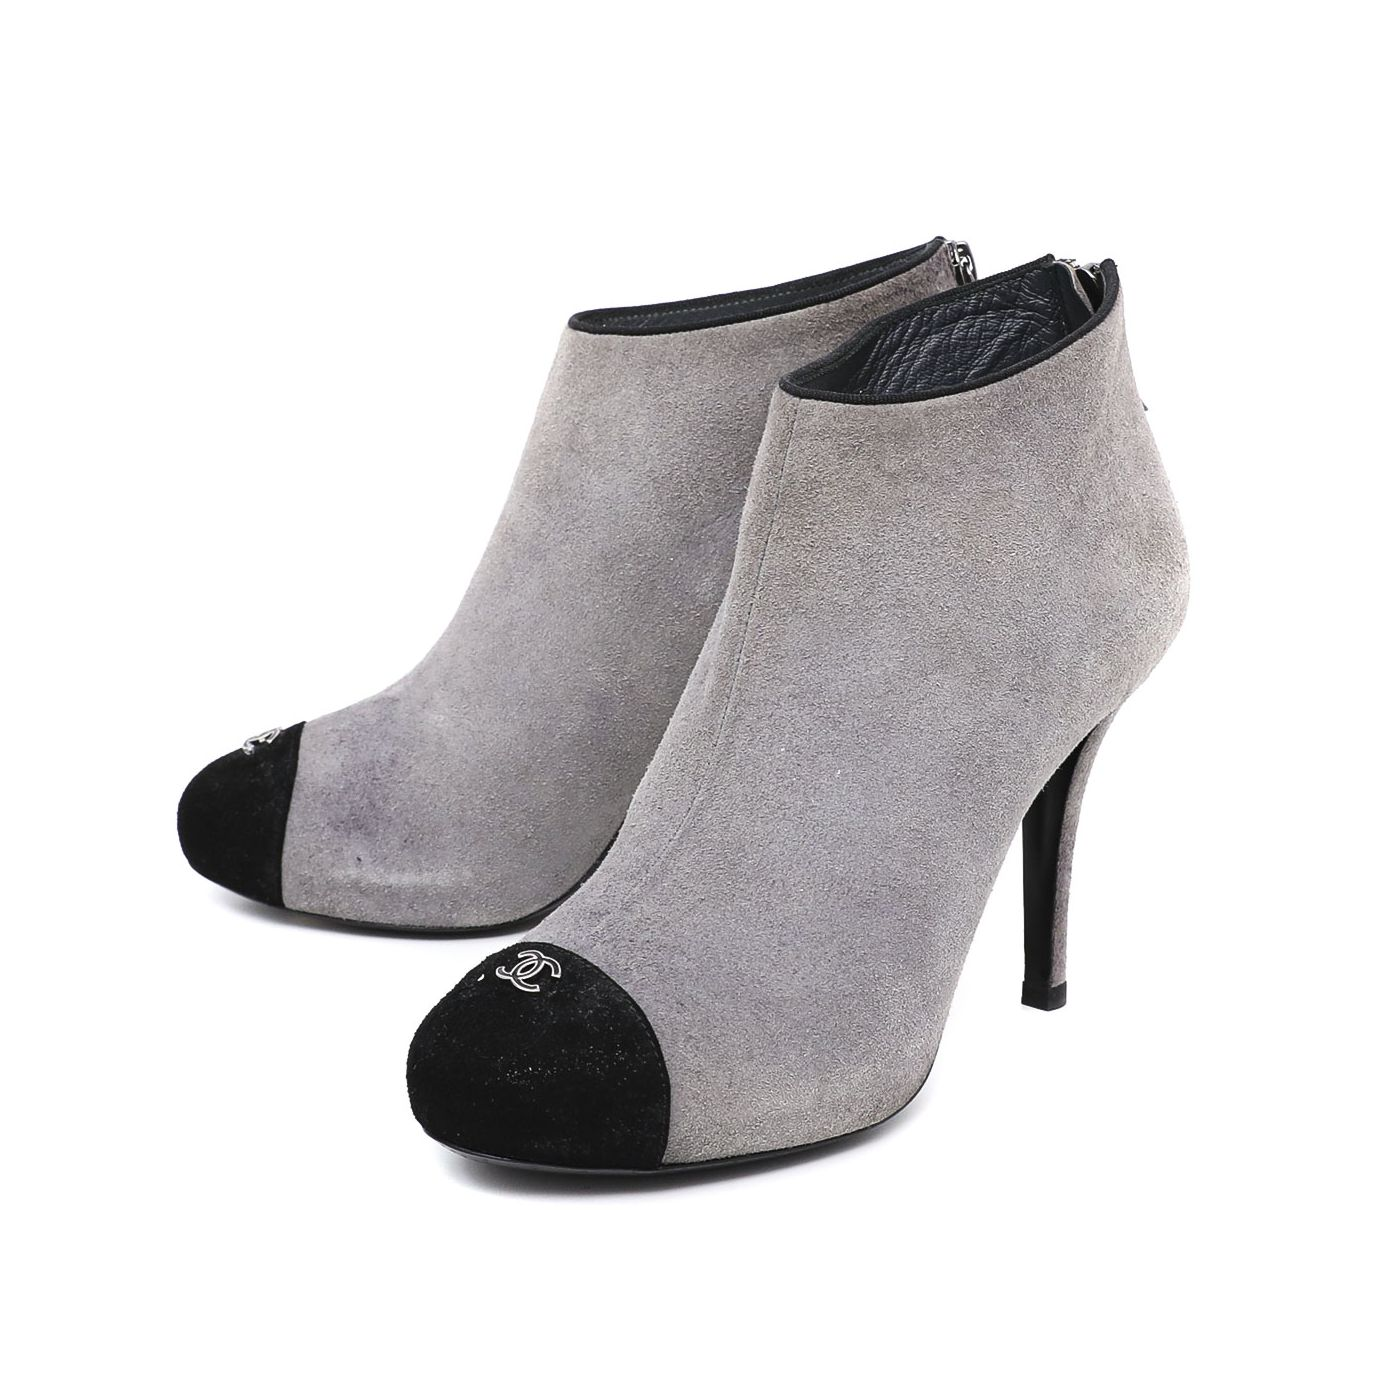 Chanel Bicolor Captoe CC Ankle Boots 39.5